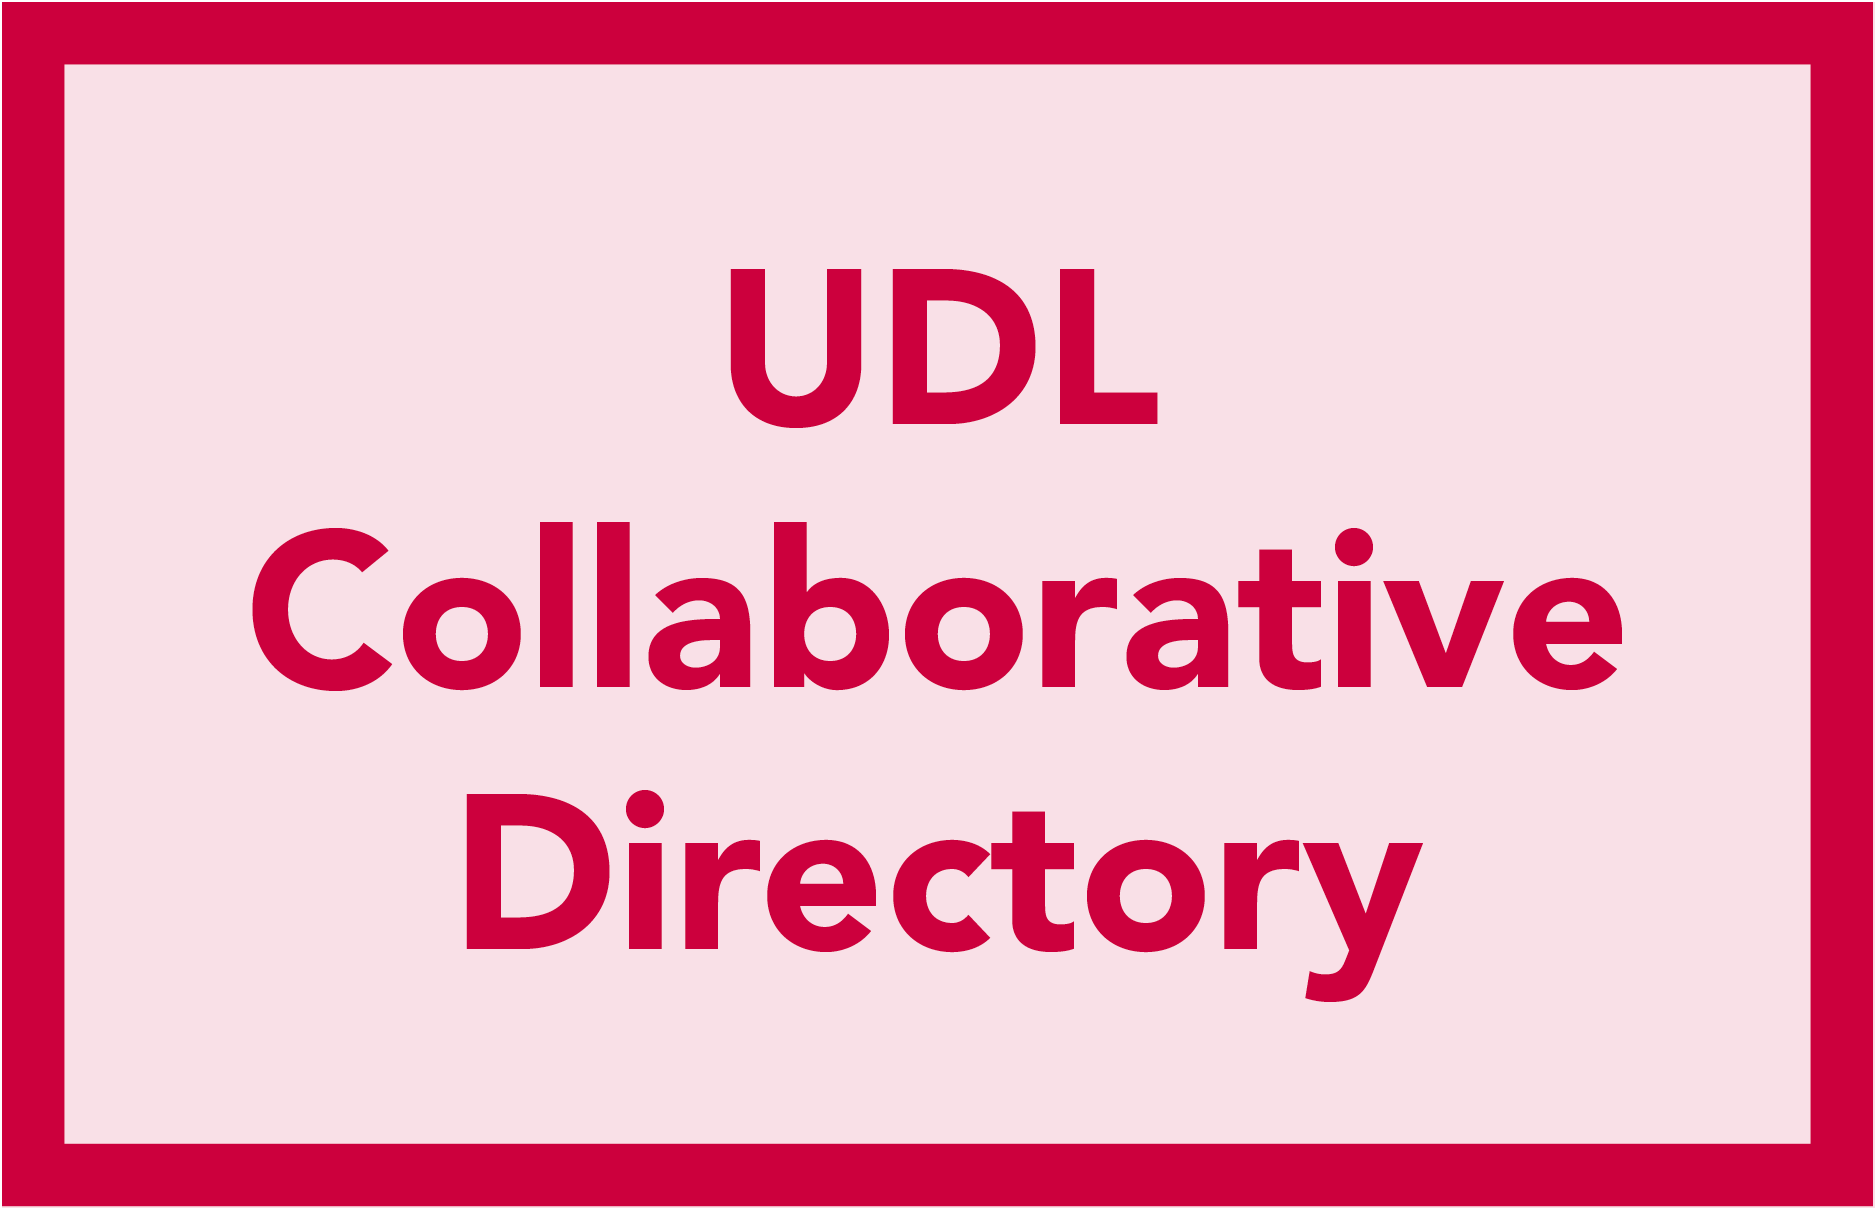 UDL Collaborative Directory